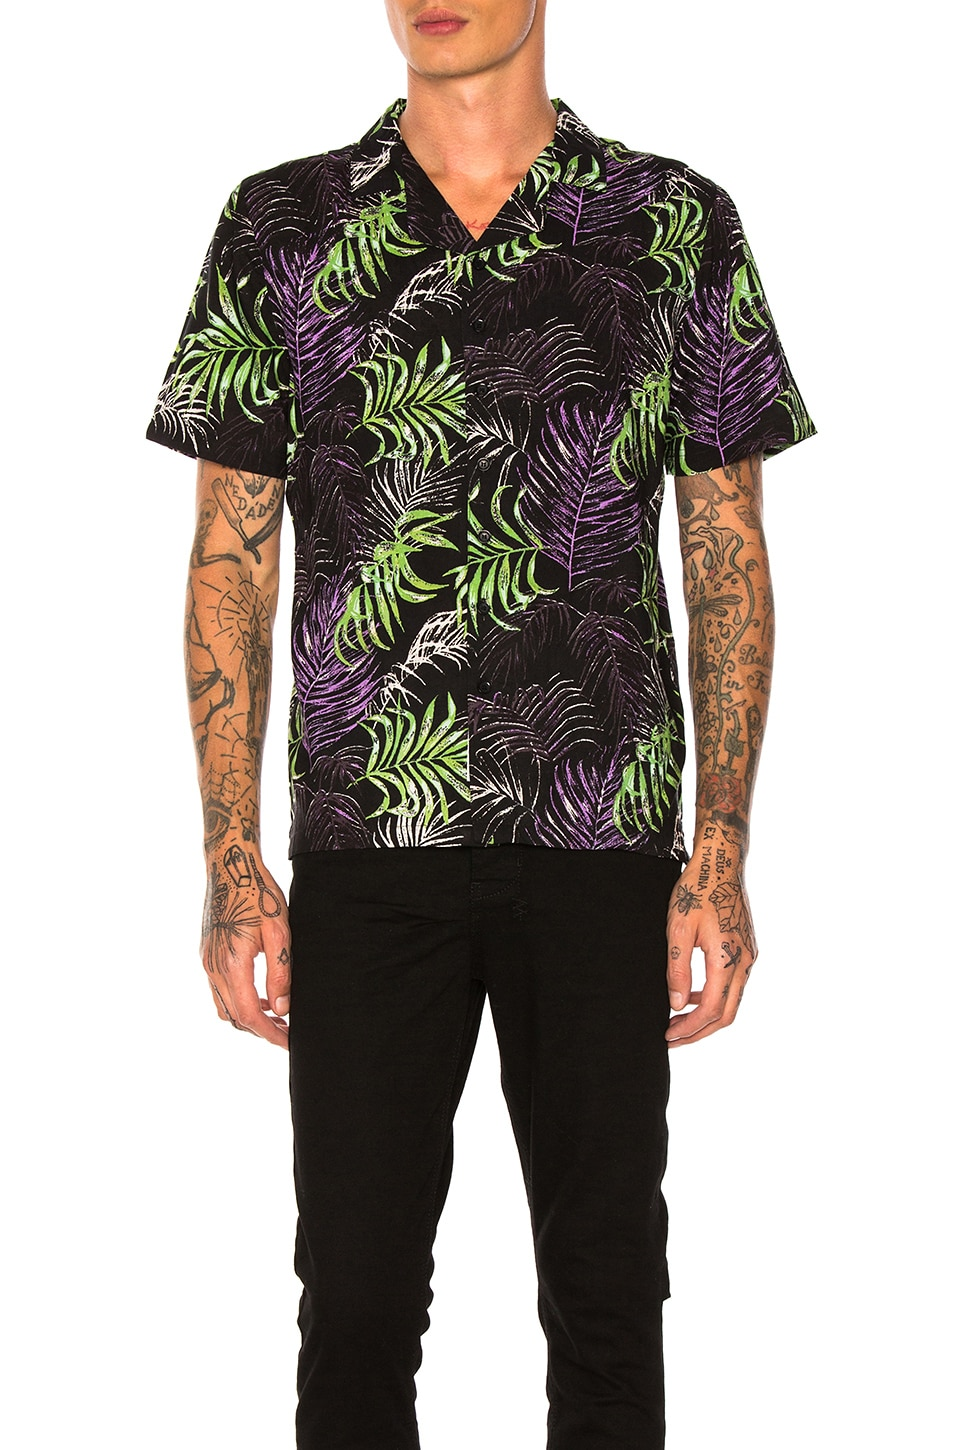 Hornsea Shirt by Native Youth